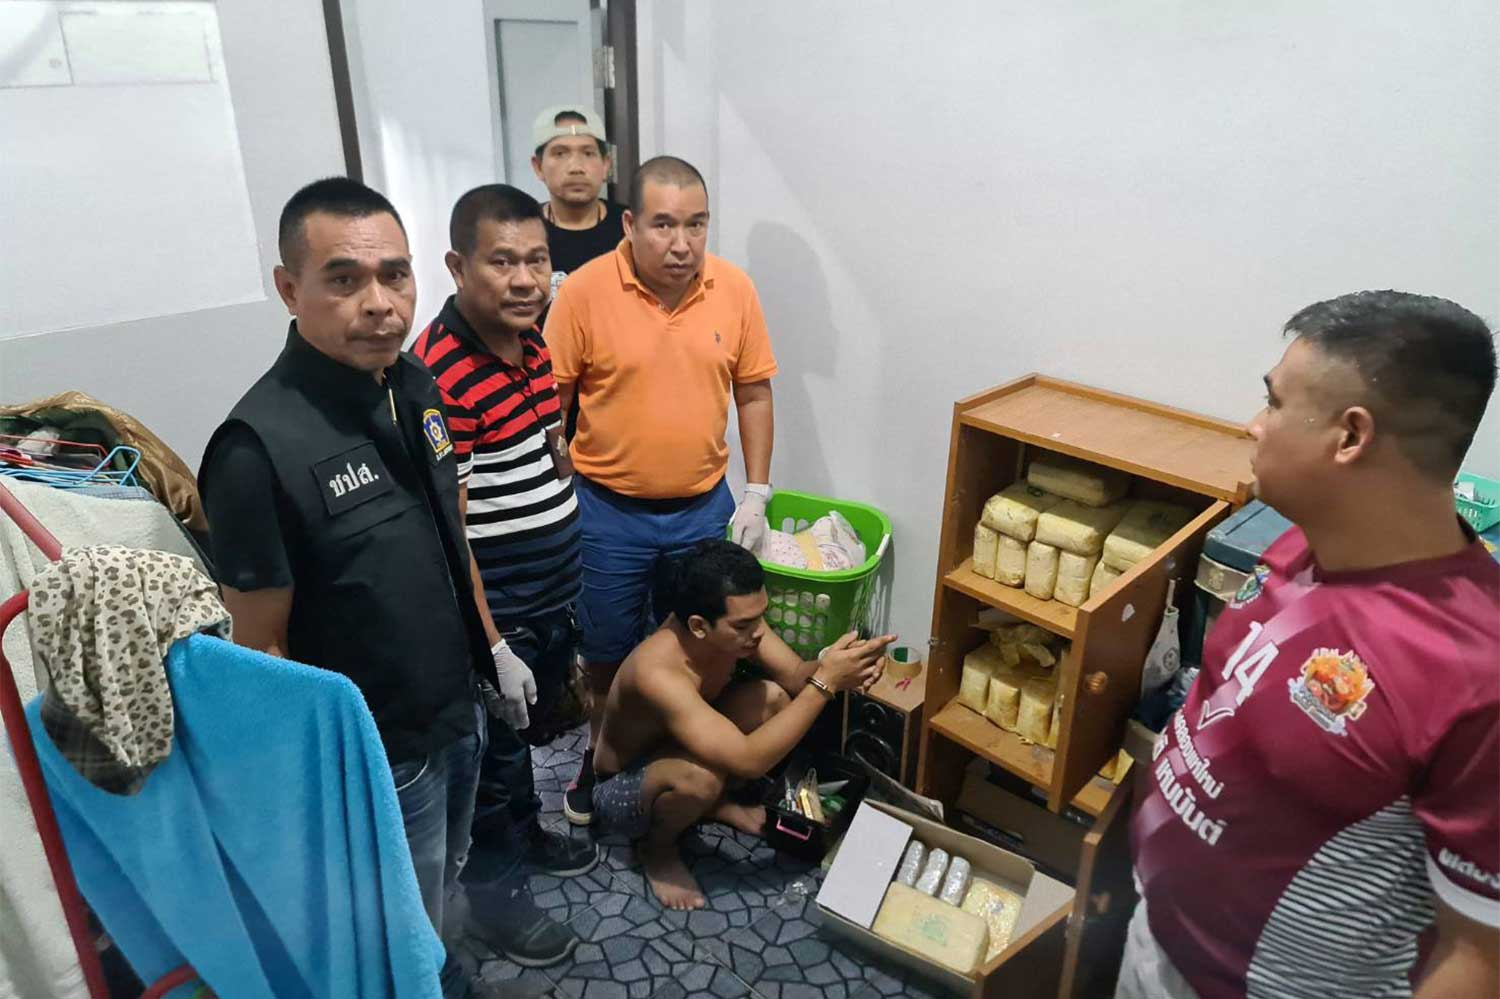 Police pose with some of the drugs seized at a house in Hat Yai district, Songkhla province, on Nov 14. Suspected drug dealer Sompong Mugem (squatting) was arrested. (Photo: Assawin Pakkawan)